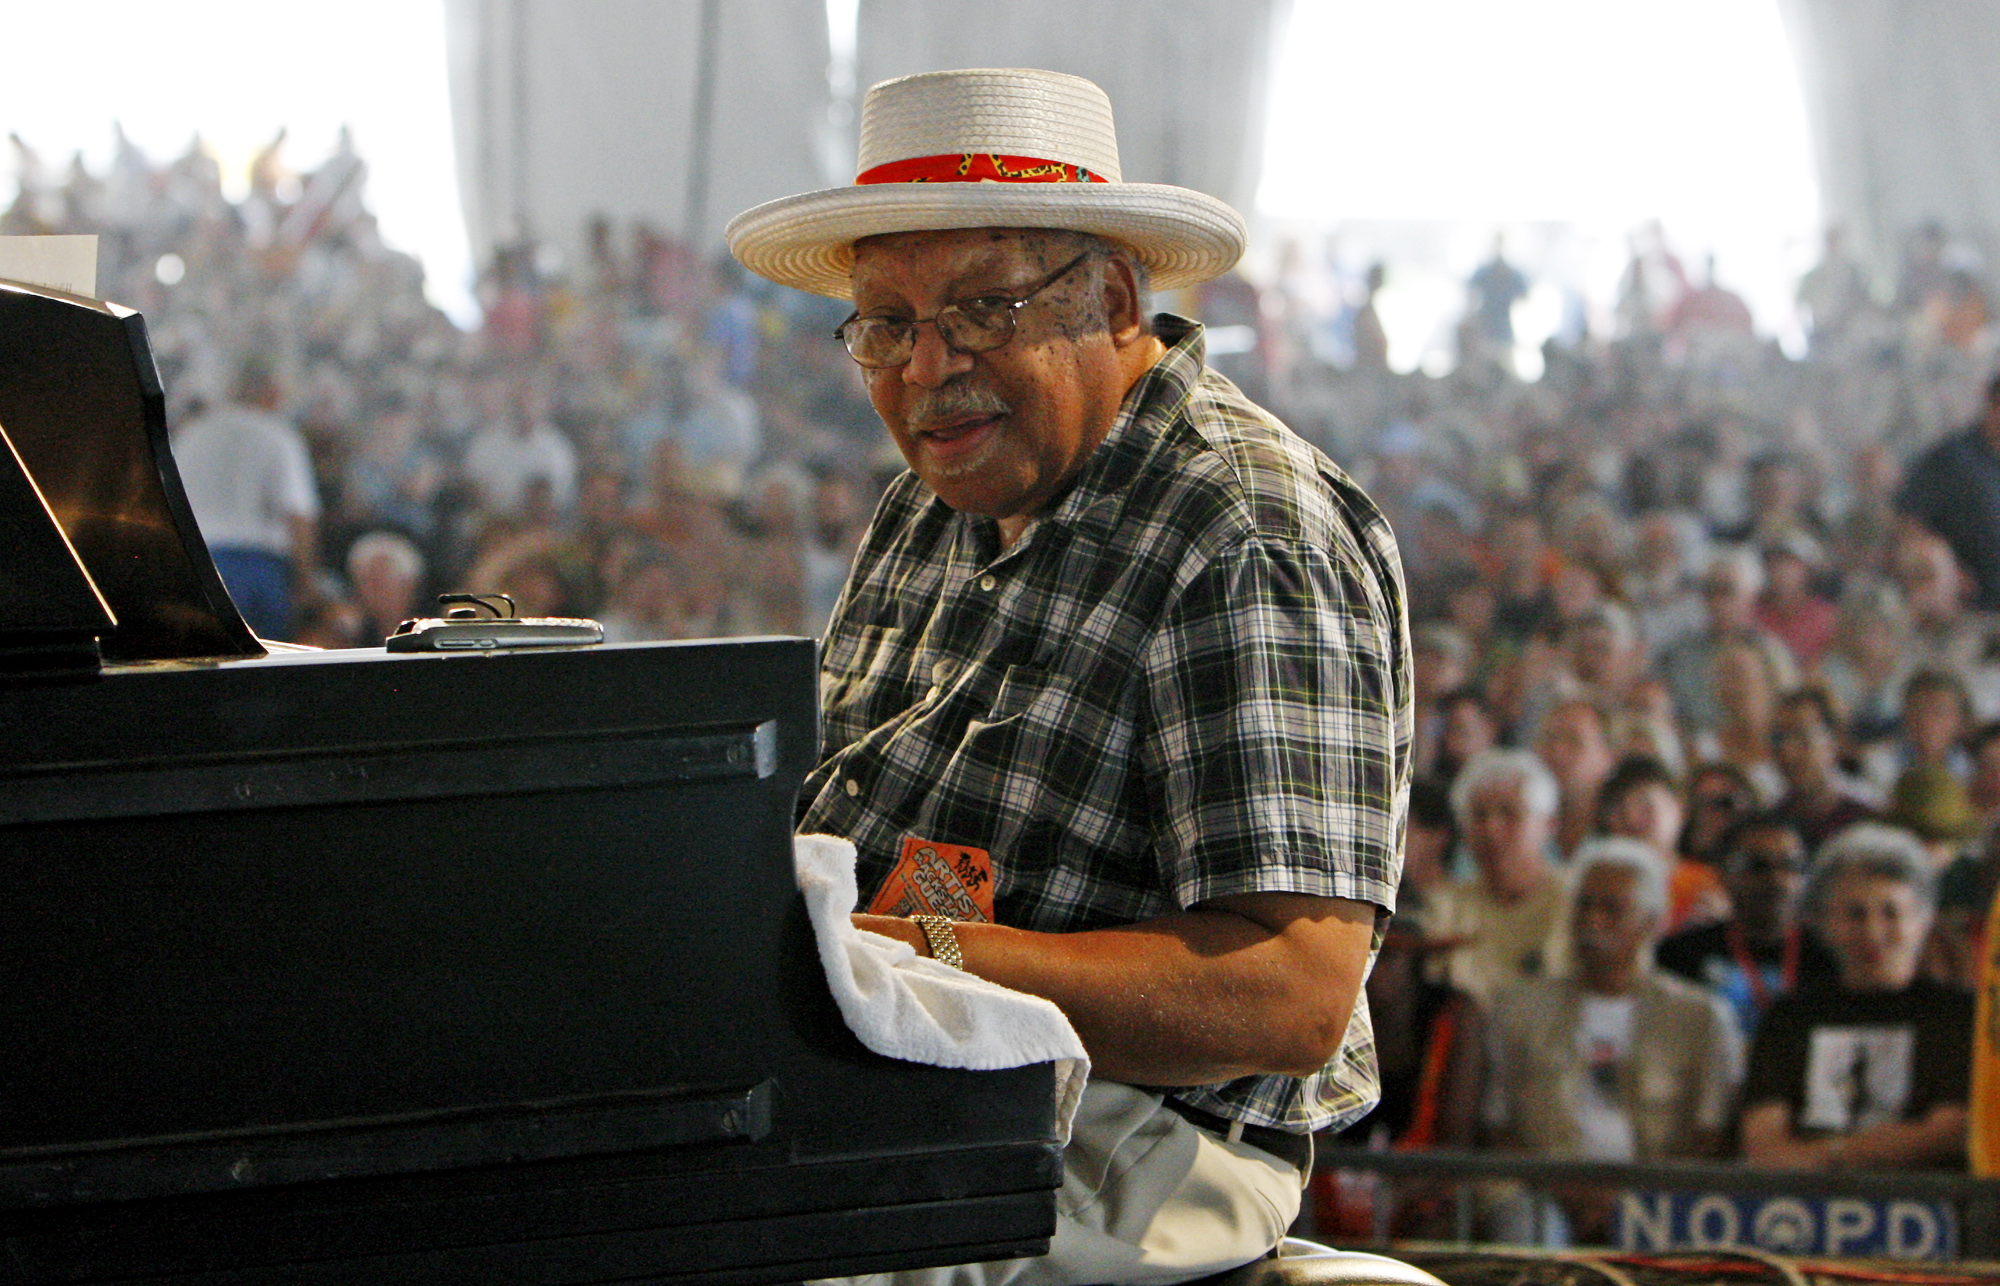 Ellis Marsalis Jr., pianist, educator and patriarch of legendary musical family, dies of complications from coronavirus